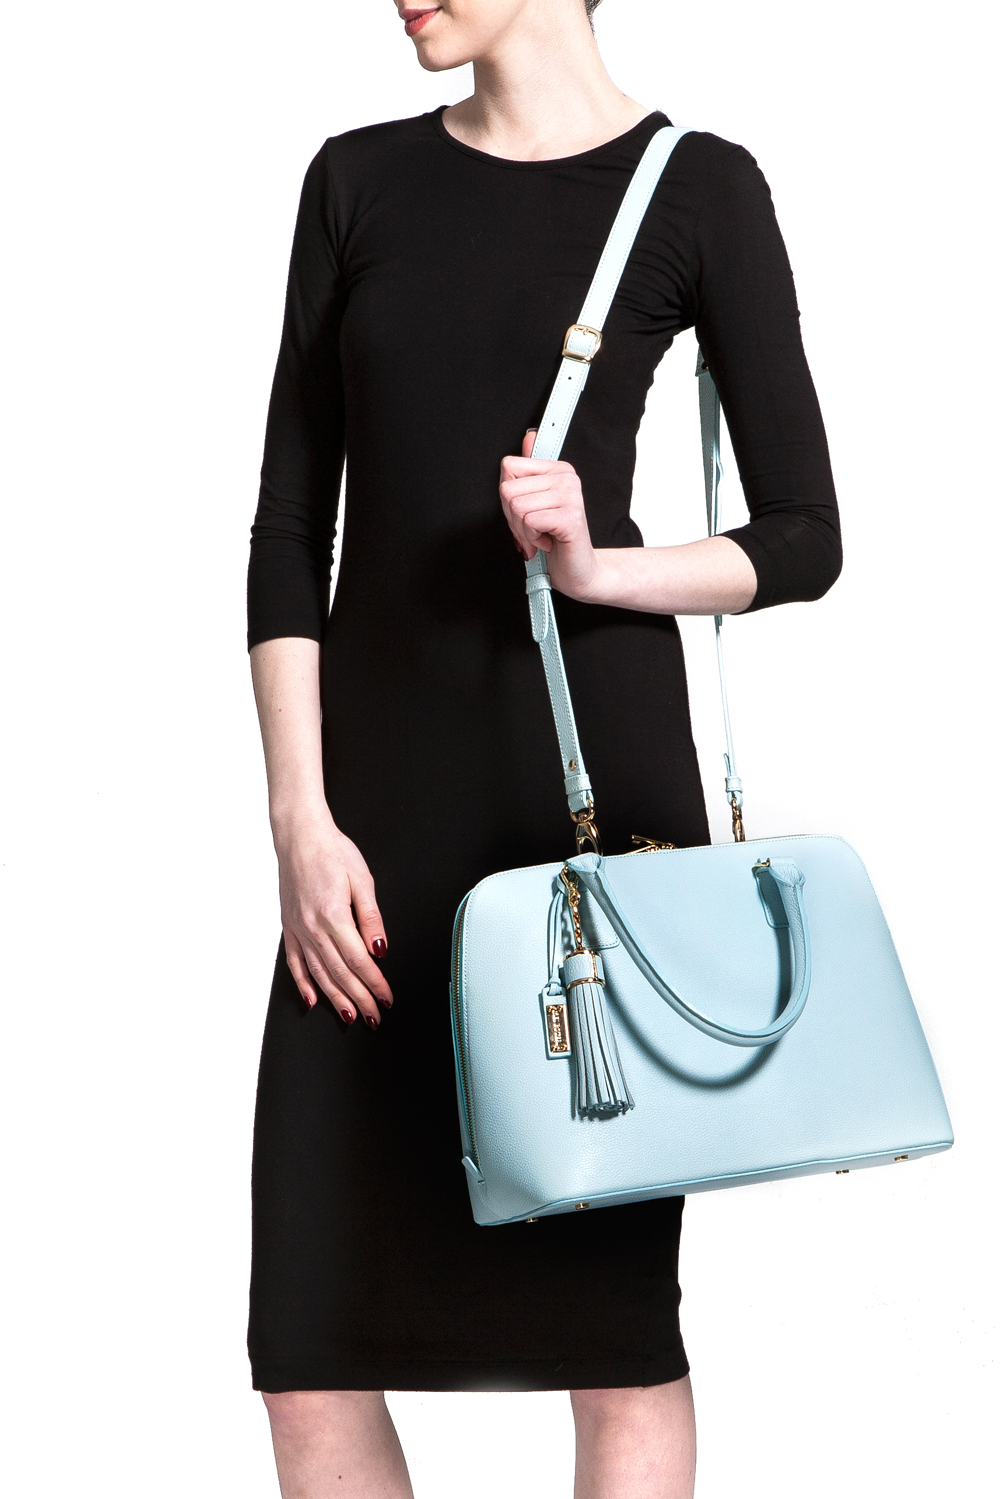 Mel Boteri | Serenity Blue Leather 'Watson' Tote | Shoulder Strap